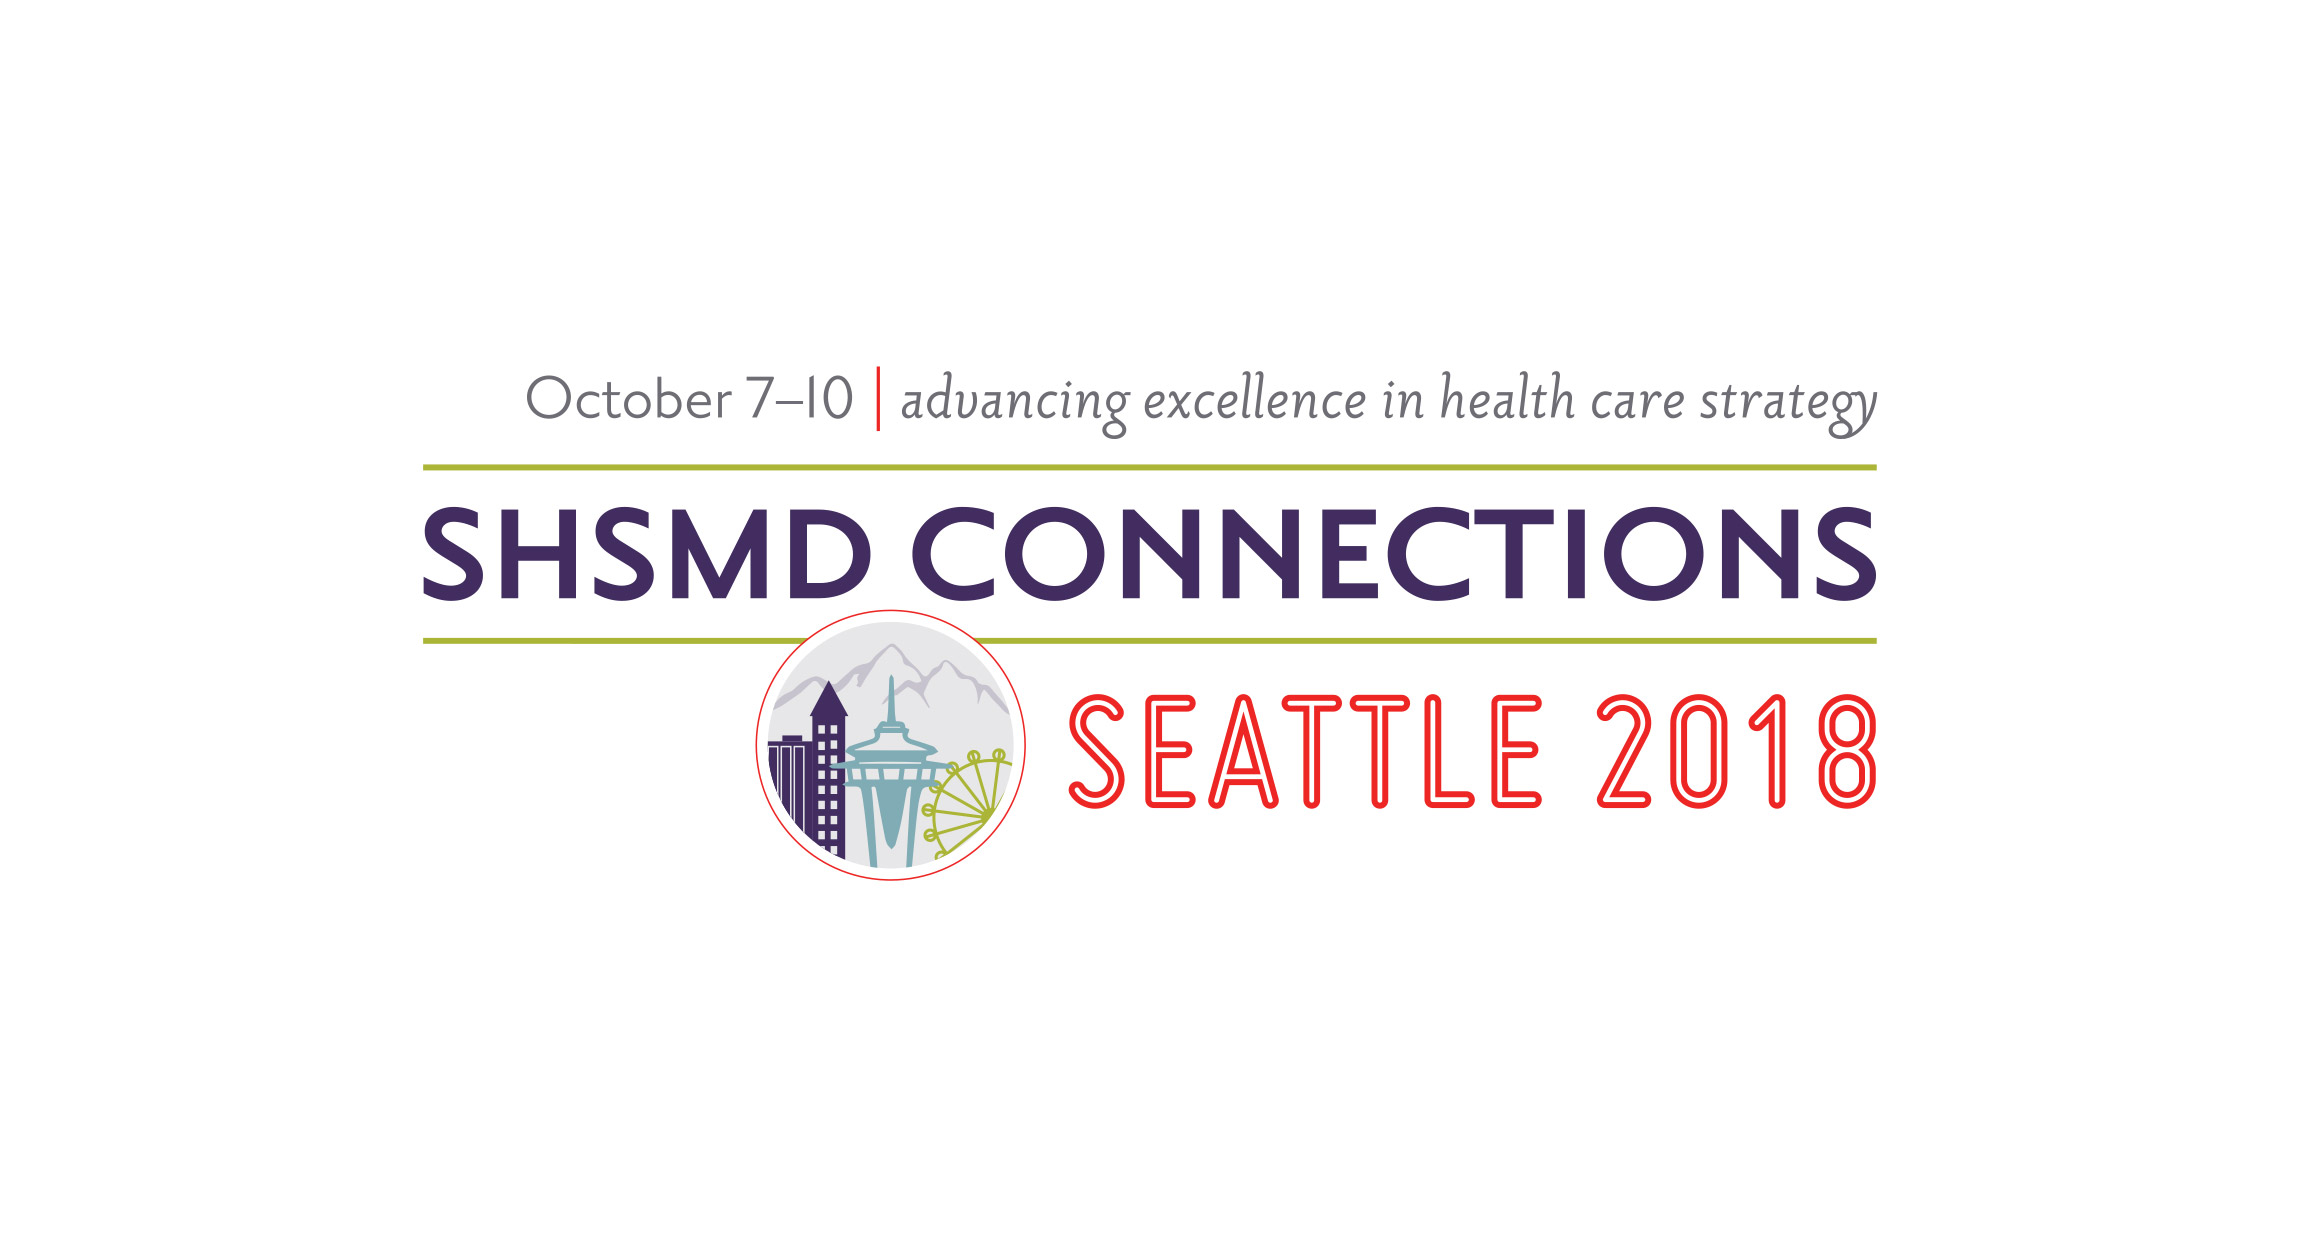 SHSMD Connections 2018 Conference Branding Design by Hughes Design